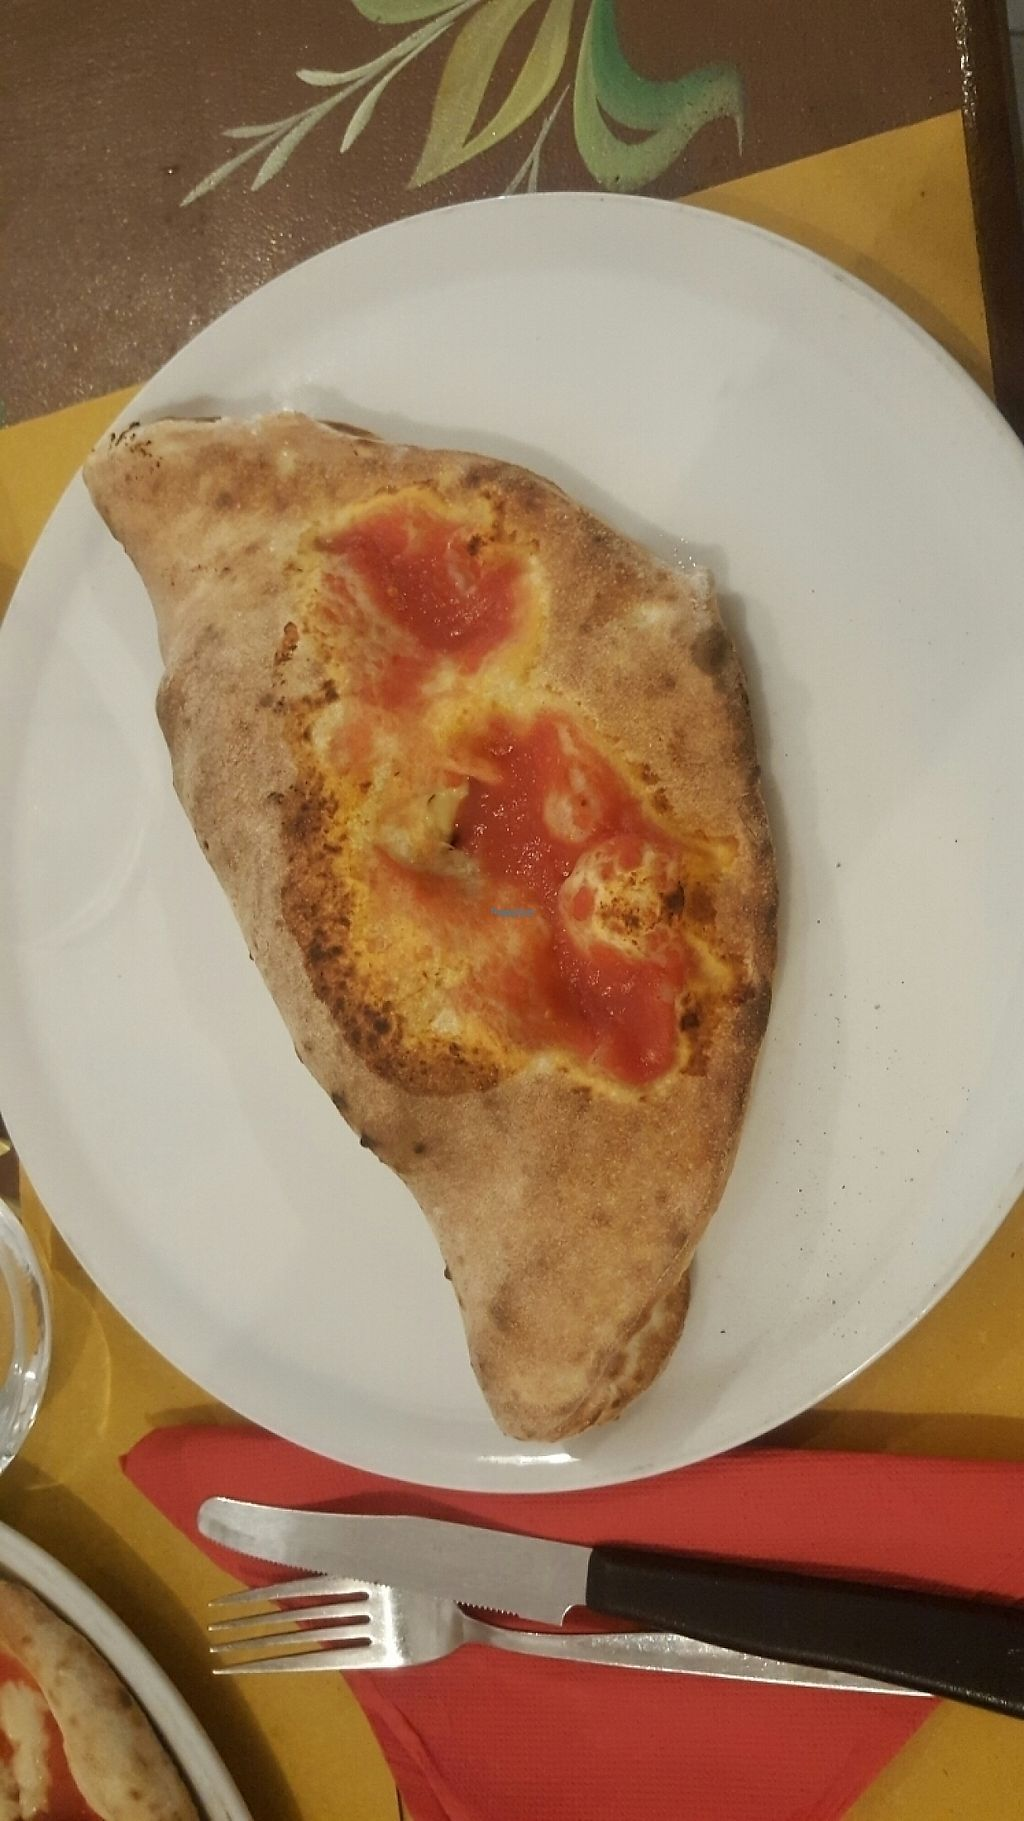 """Photo of Sciue Sciue  by <a href=""""/members/profile/loveforveganfood"""">loveforveganfood</a> <br/>Calzone with vegan cheese and veg <br/> February 14, 2017  - <a href='/contact/abuse/image/87067/226476'>Report</a>"""